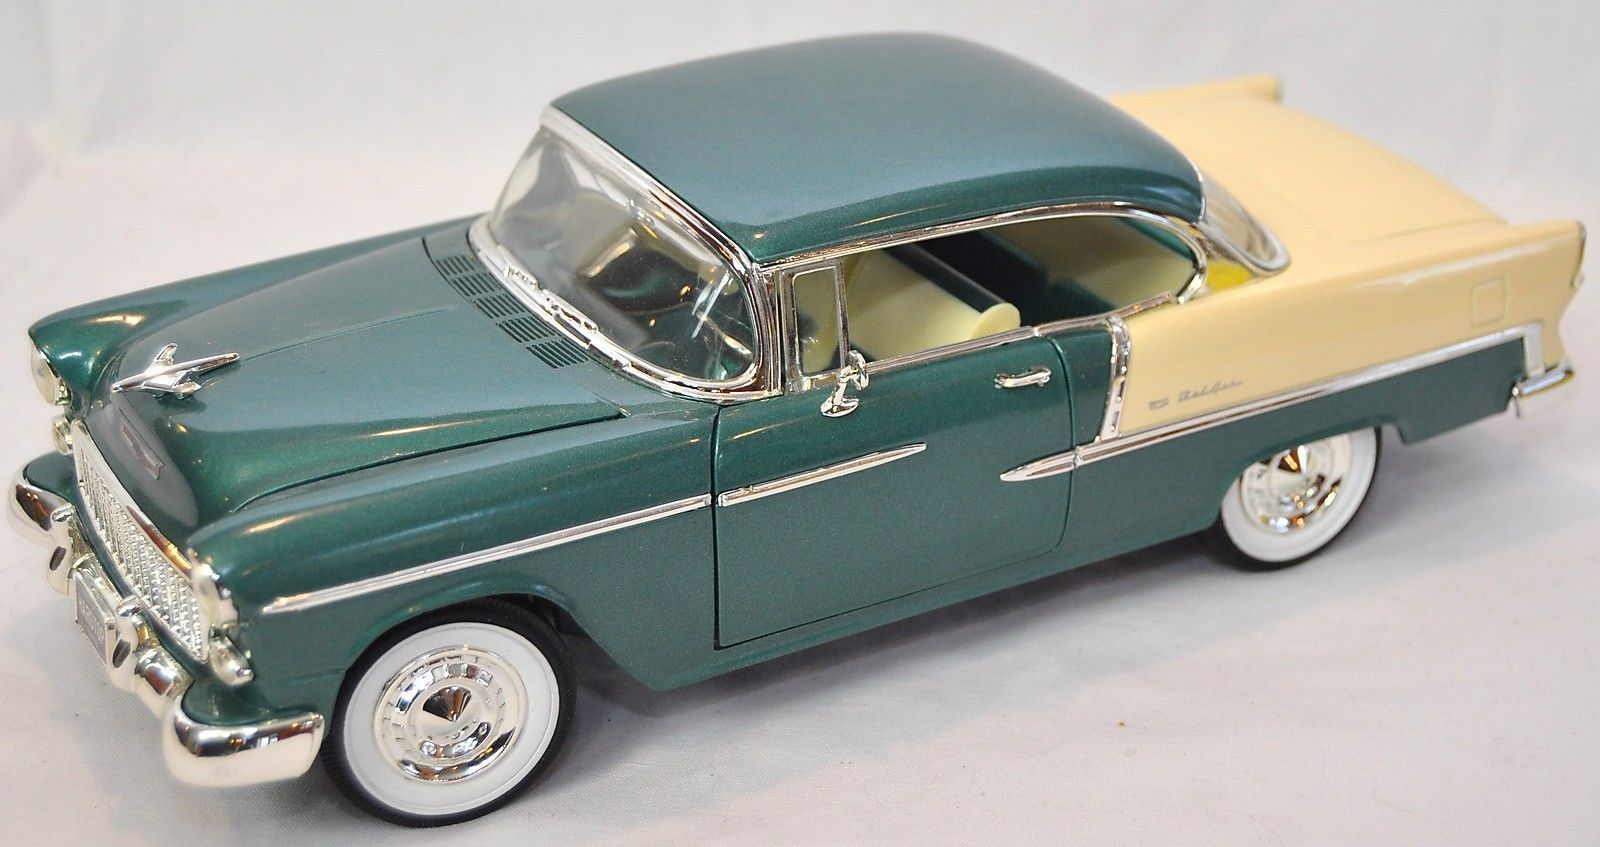 Ertl 1 18 1955 chevy bel air neptune green 7256 error american muscle sealed 55